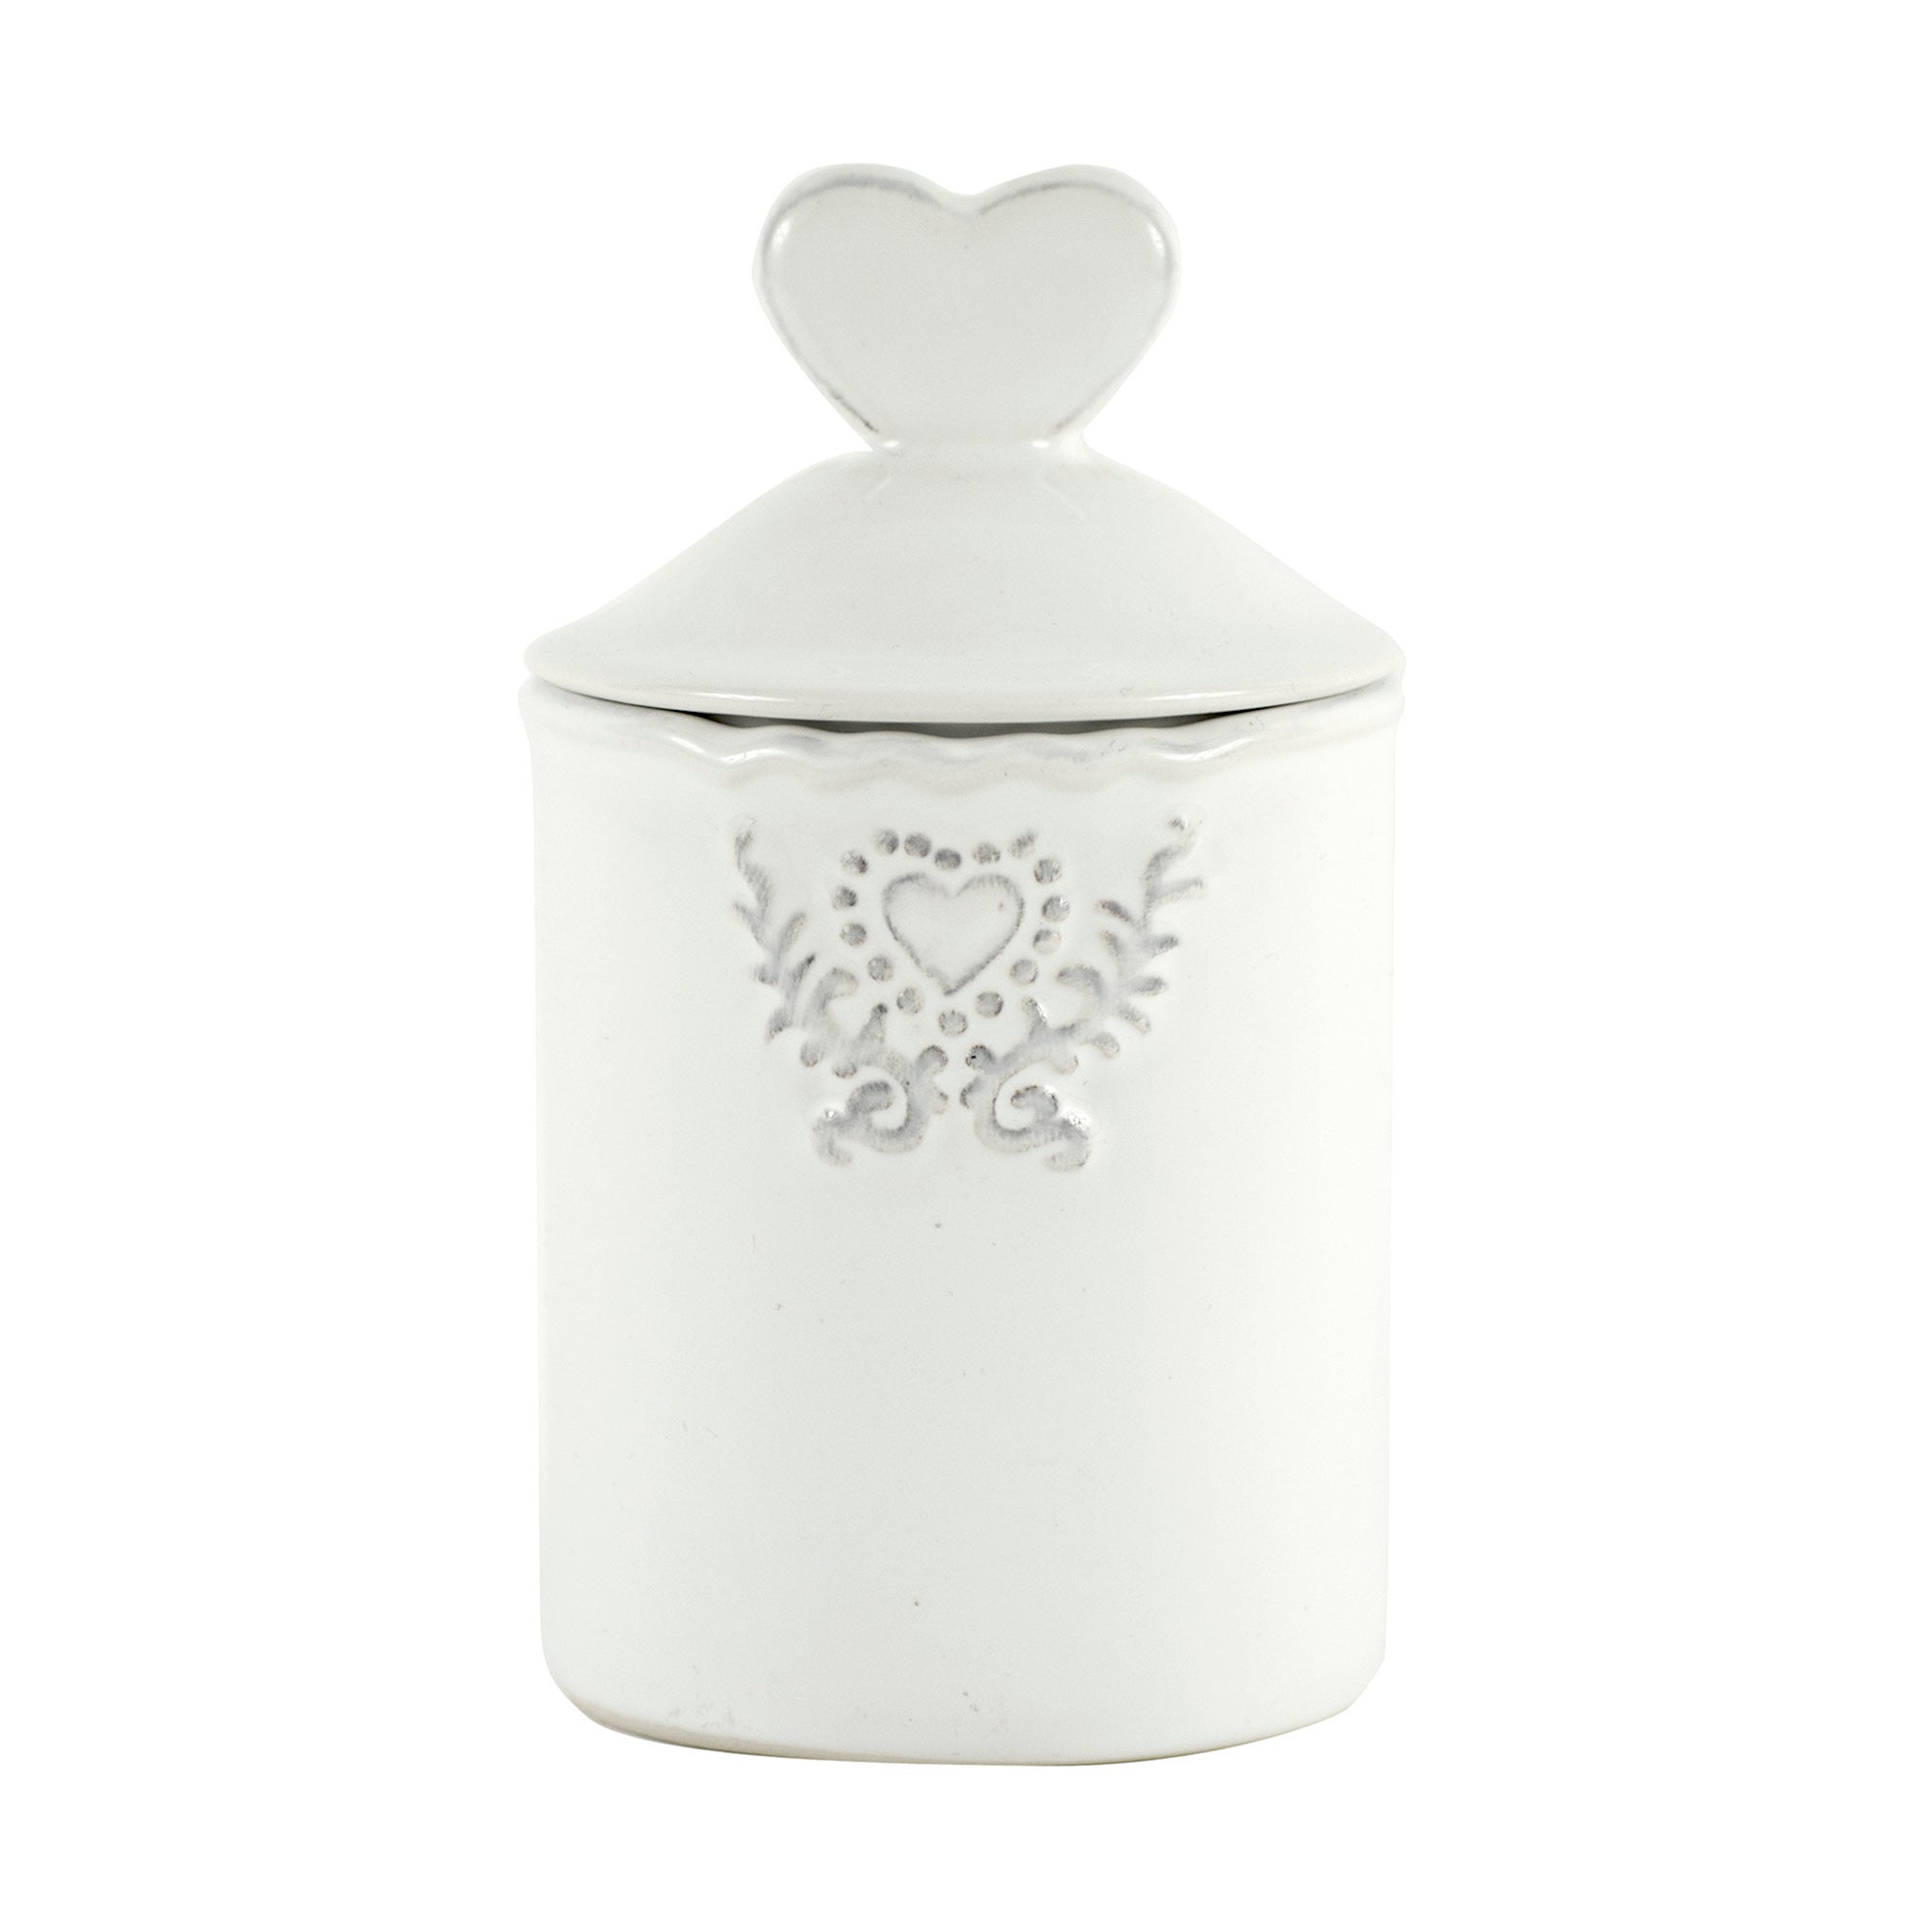 Maison Chic Collection Jar with Lid